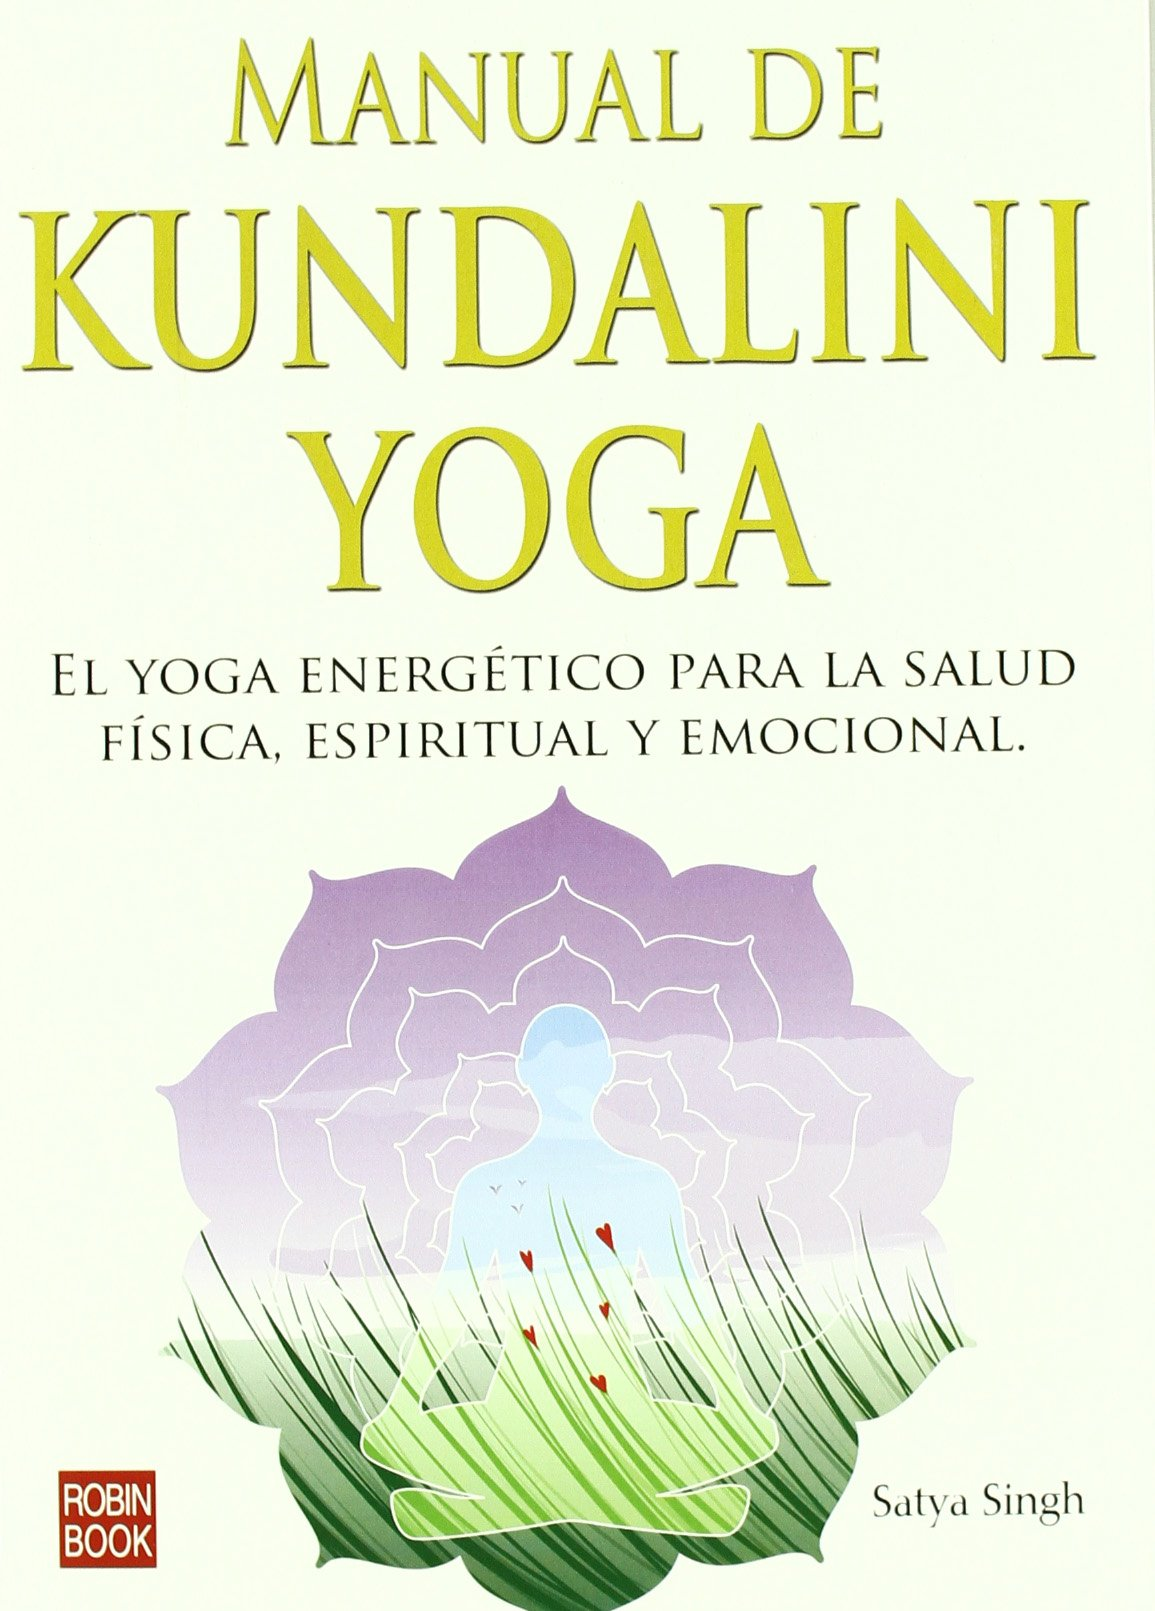 Manual de kundalini yoga: Amazon.es: Sayta Singh: Libros